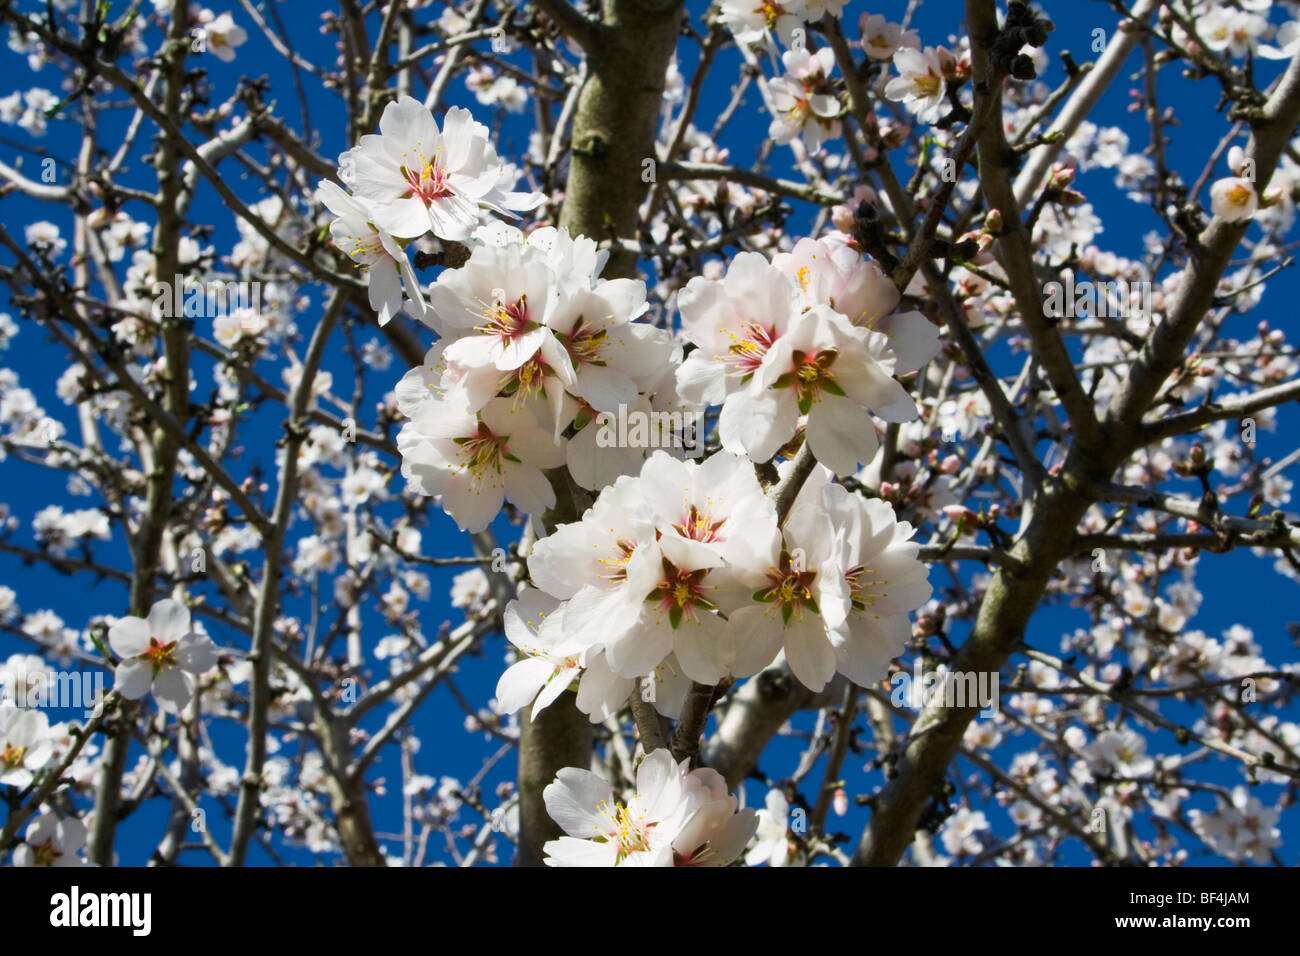 Agriculture - Almond blossoms in full bloom in late Winter / Glenn County, California, USA. - Stock Image